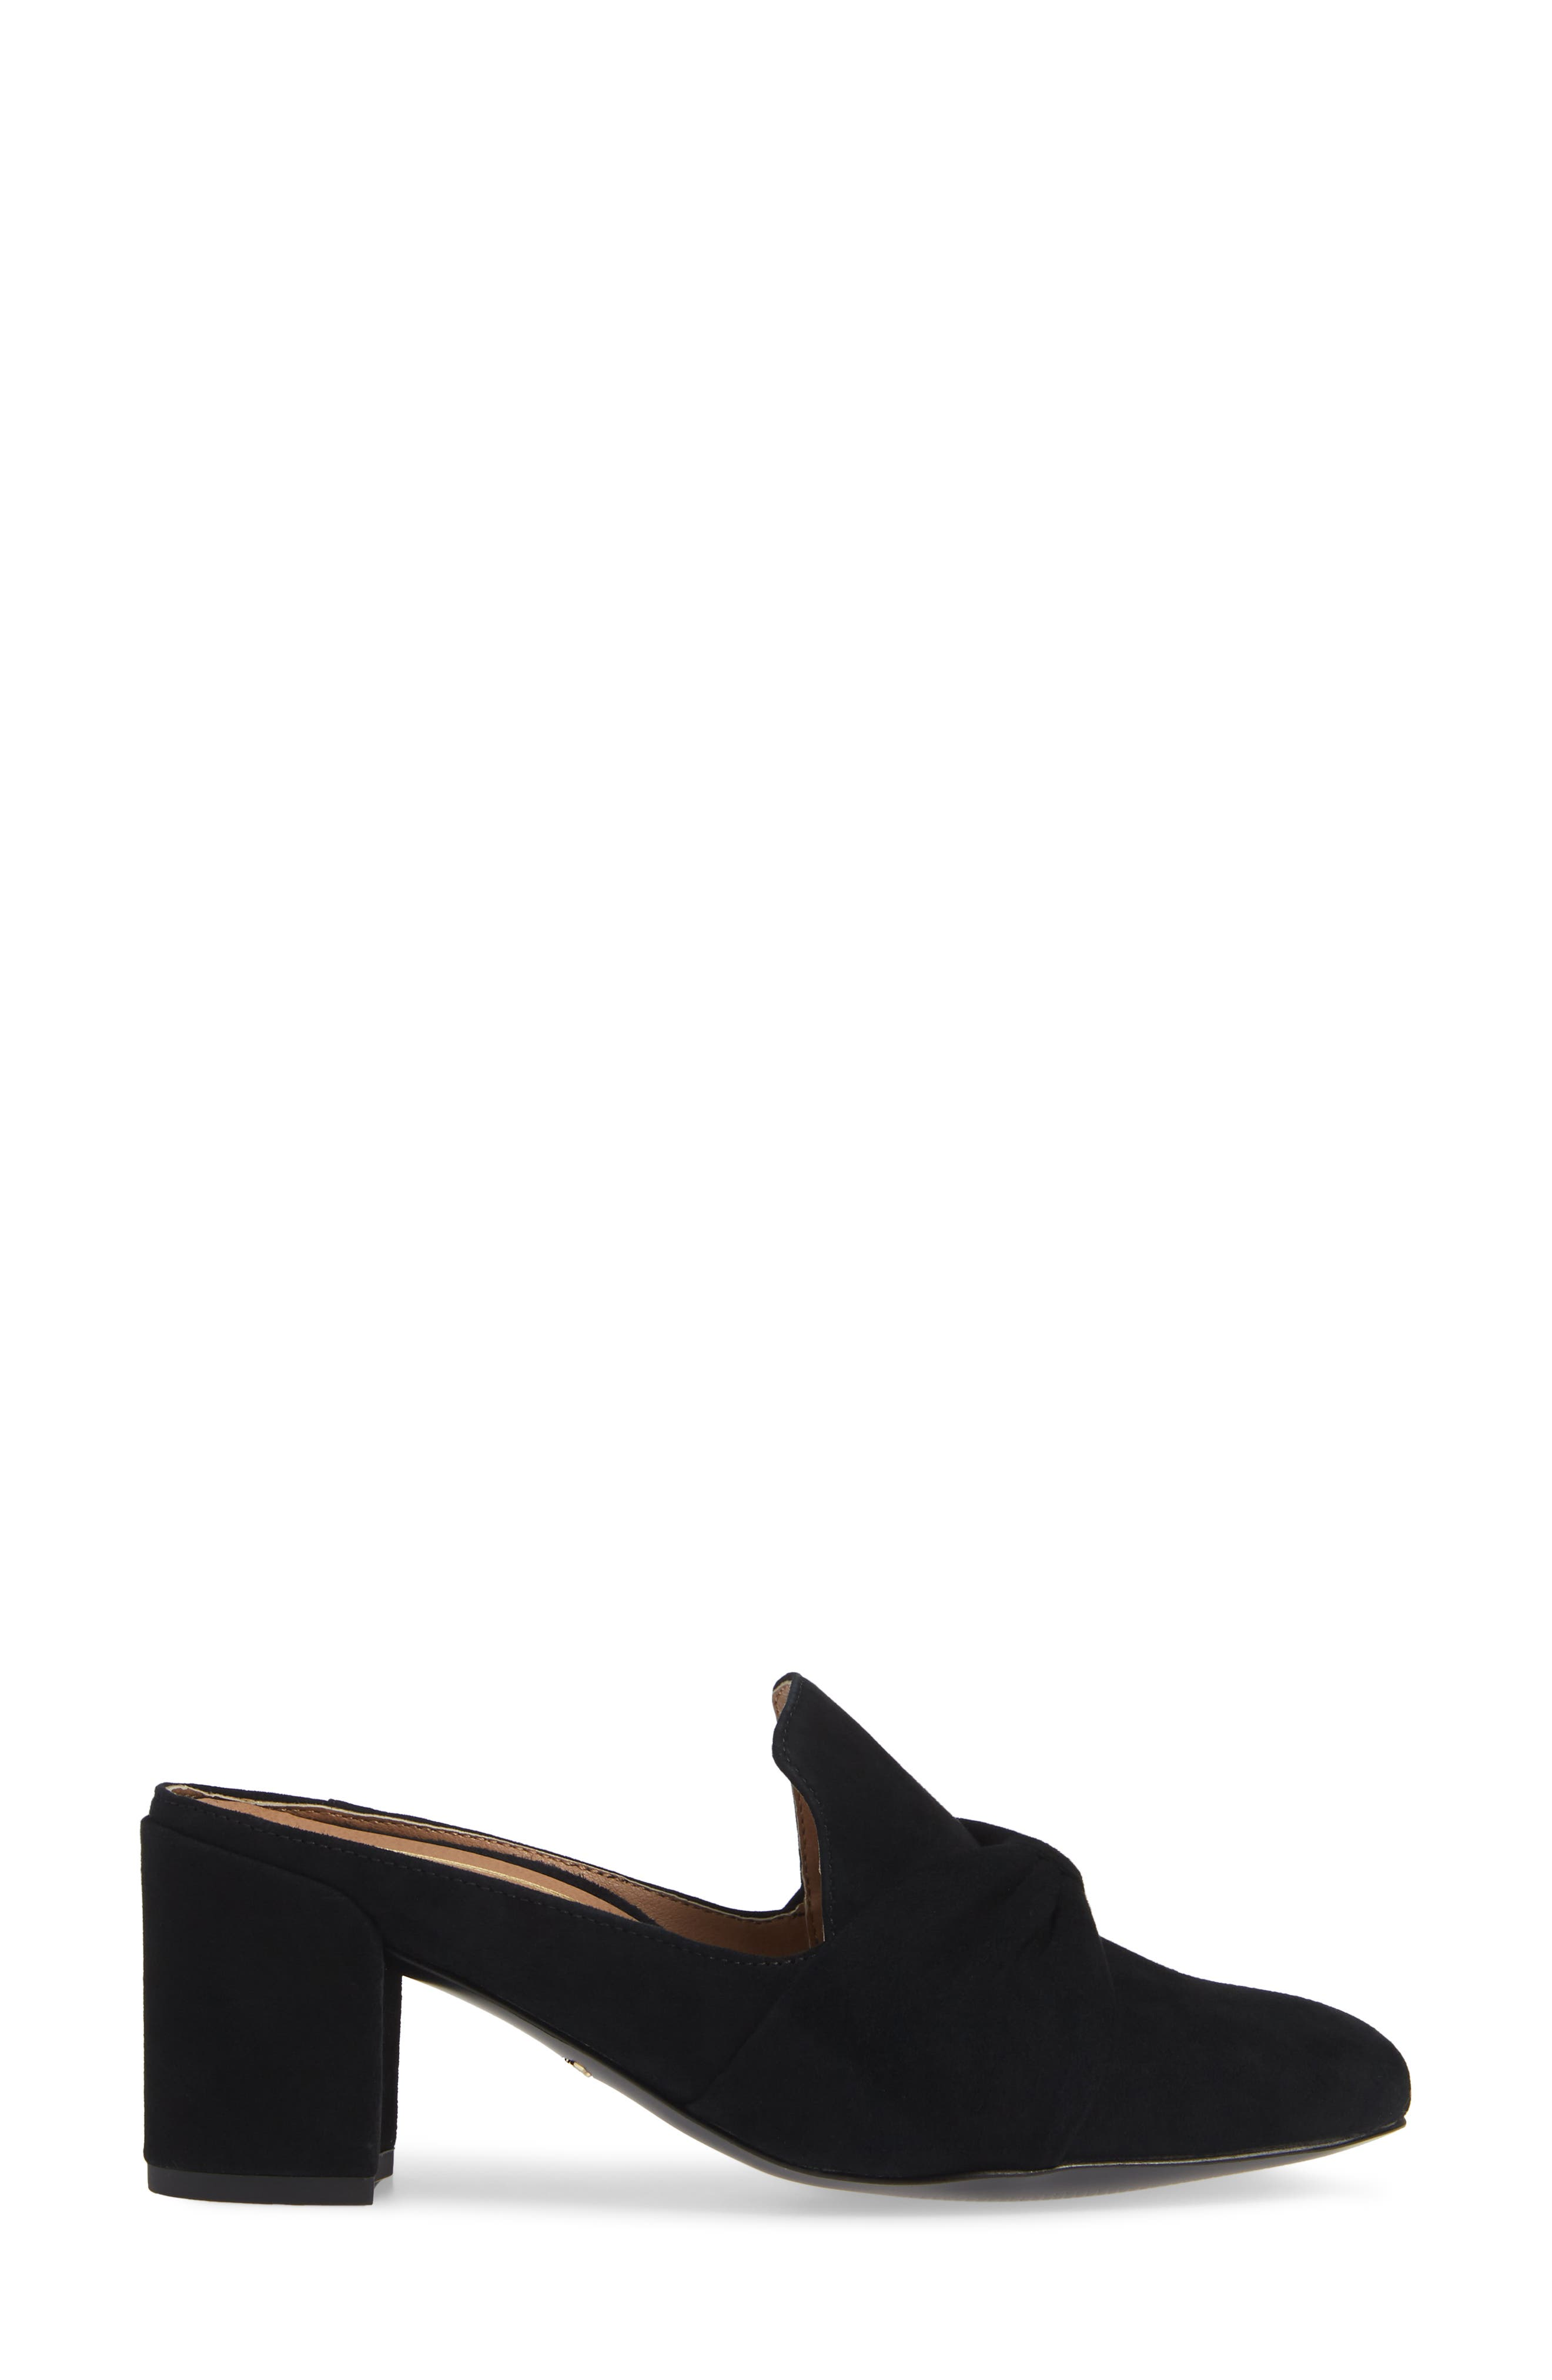 Presley Mule,                             Alternate thumbnail 3, color,                             BLACK SUEDE